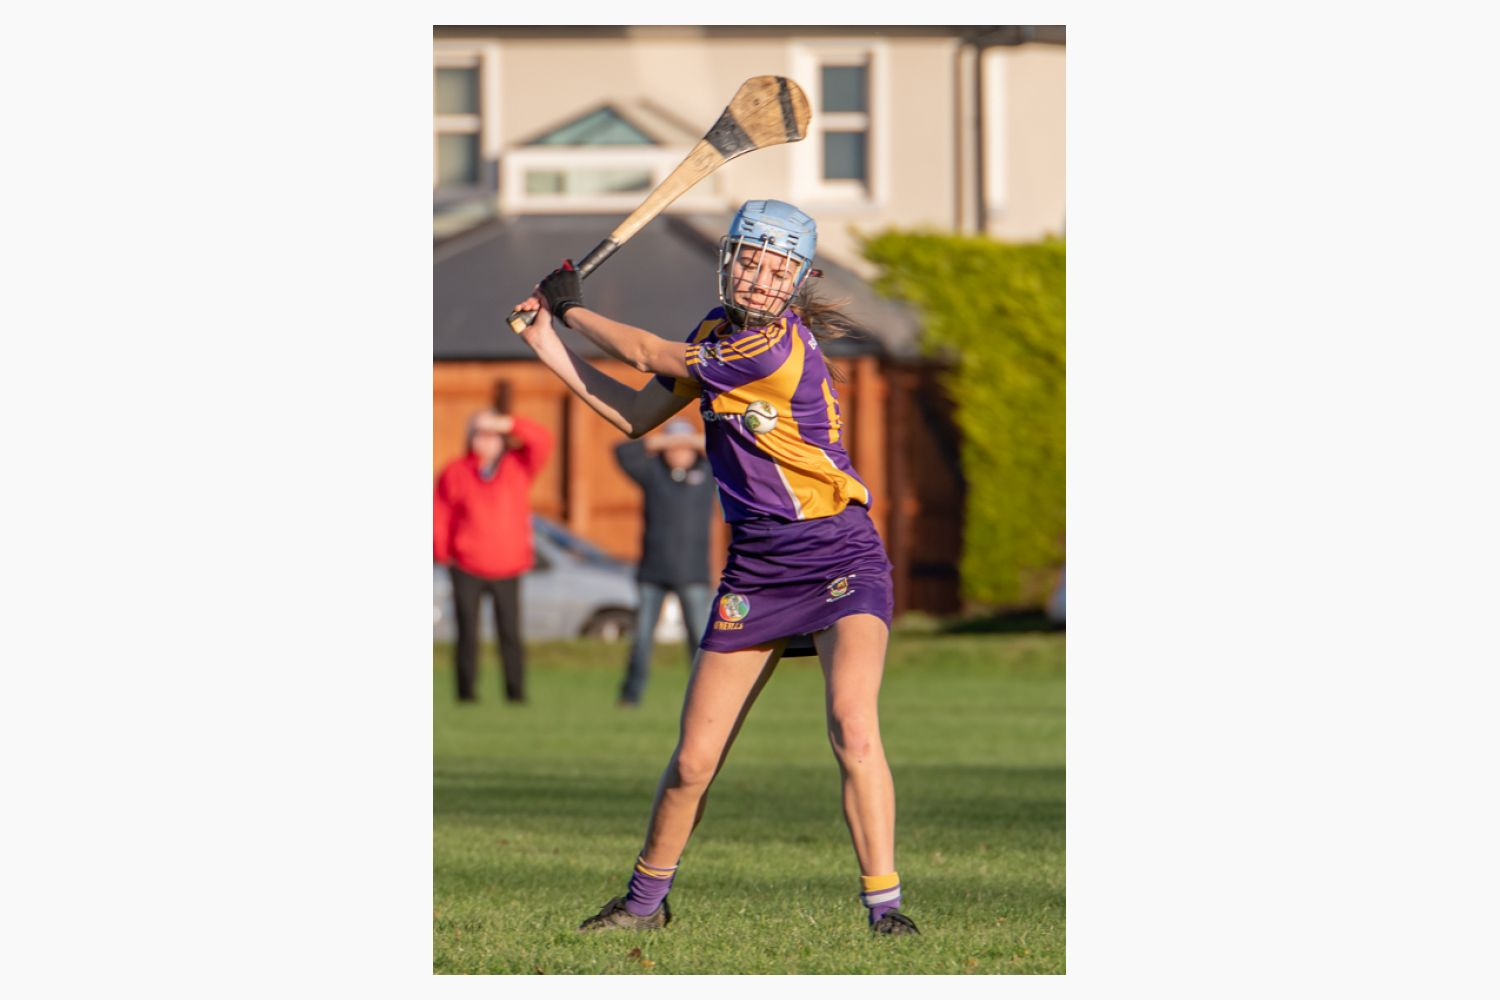 Championship Semi Final win for Kilmacud Crokes Minor A Camogie over Judes